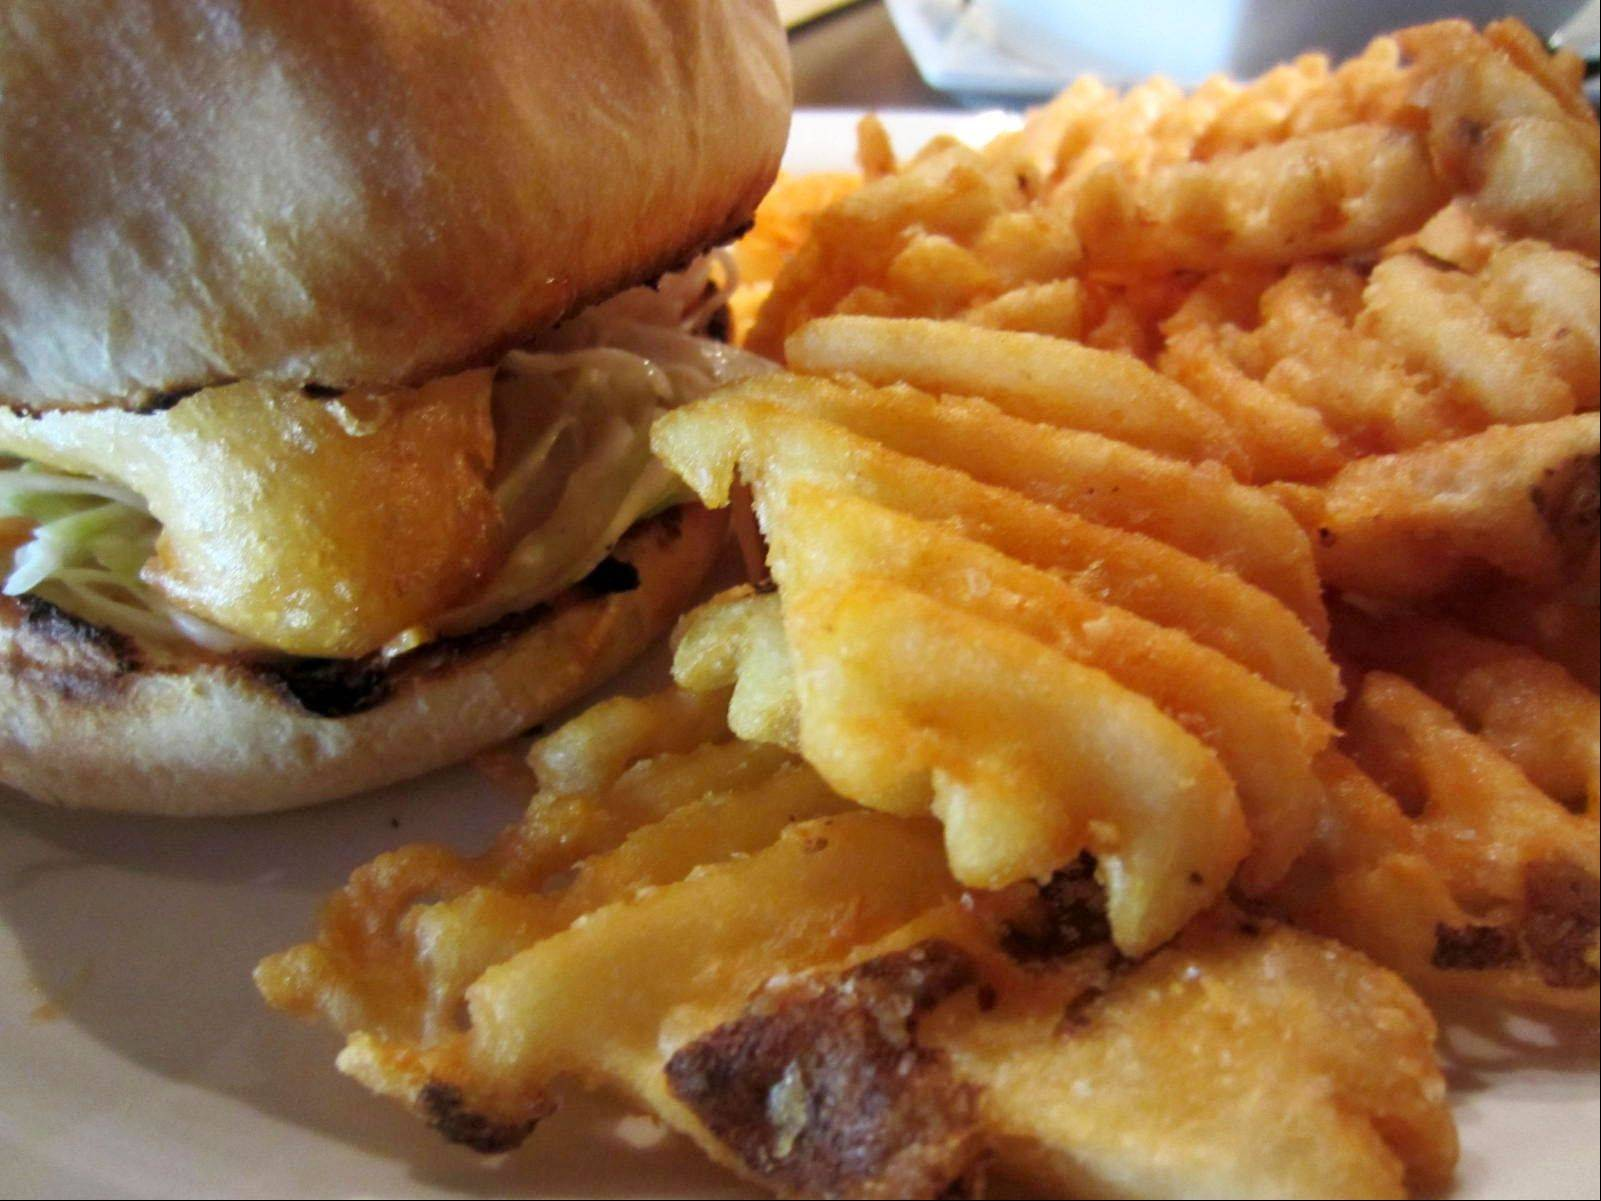 The Cape Cod Reuben features beer-battered fish and hand-cut waffle fries at The New World Tavern in Plymouth, Mass. Plymouth is gearing up for hordes of hungry visitors in the run-up to 2020, when it marks the 400th anniversary of the Mayflower landing.